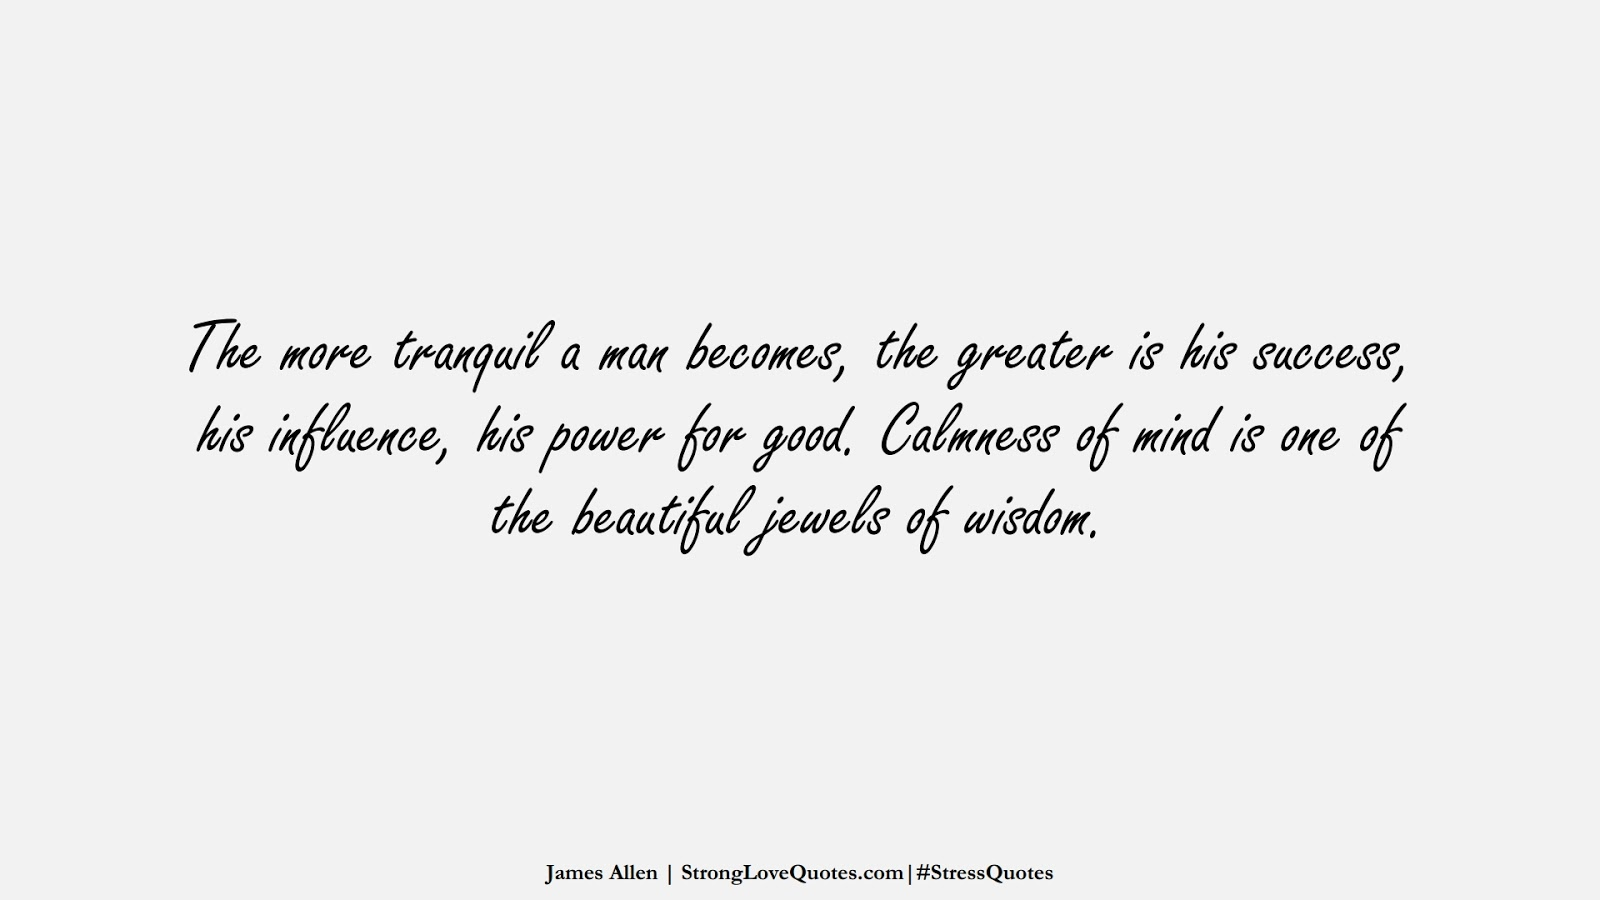 The more tranquil a man becomes, the greater is his success, his influence, his power for good. Calmness of mind is one of the beautiful jewels of wisdom. (James Allen);  #StressQuotes